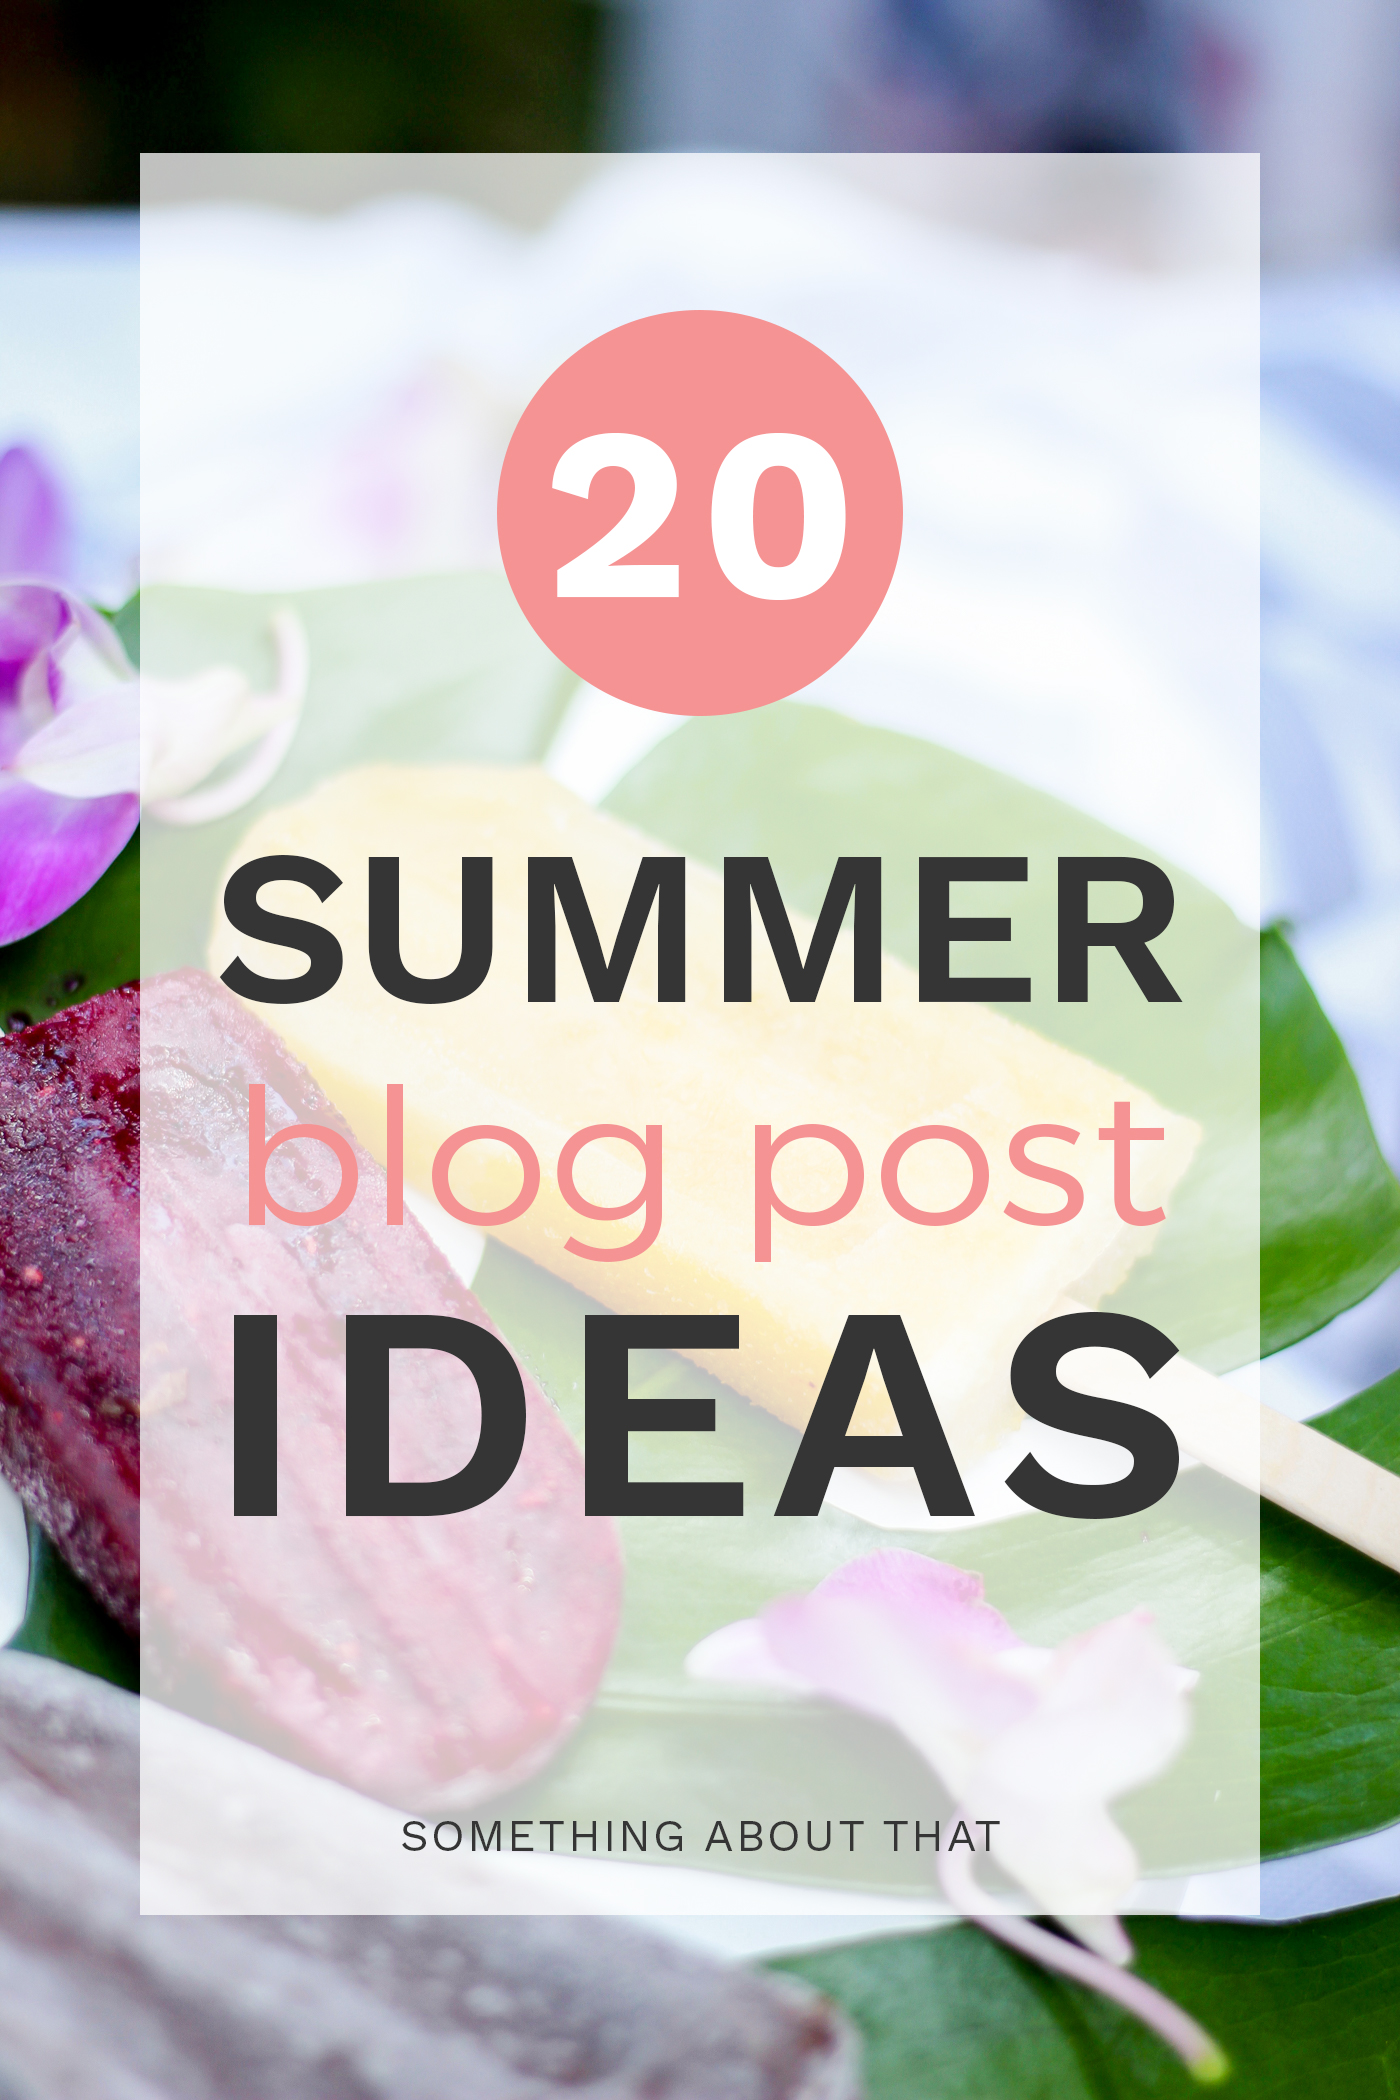 Canadian fashion, beauty and lifestyle blogger, Jackie of Something About That blog is sharing 20 summer blog post ideas